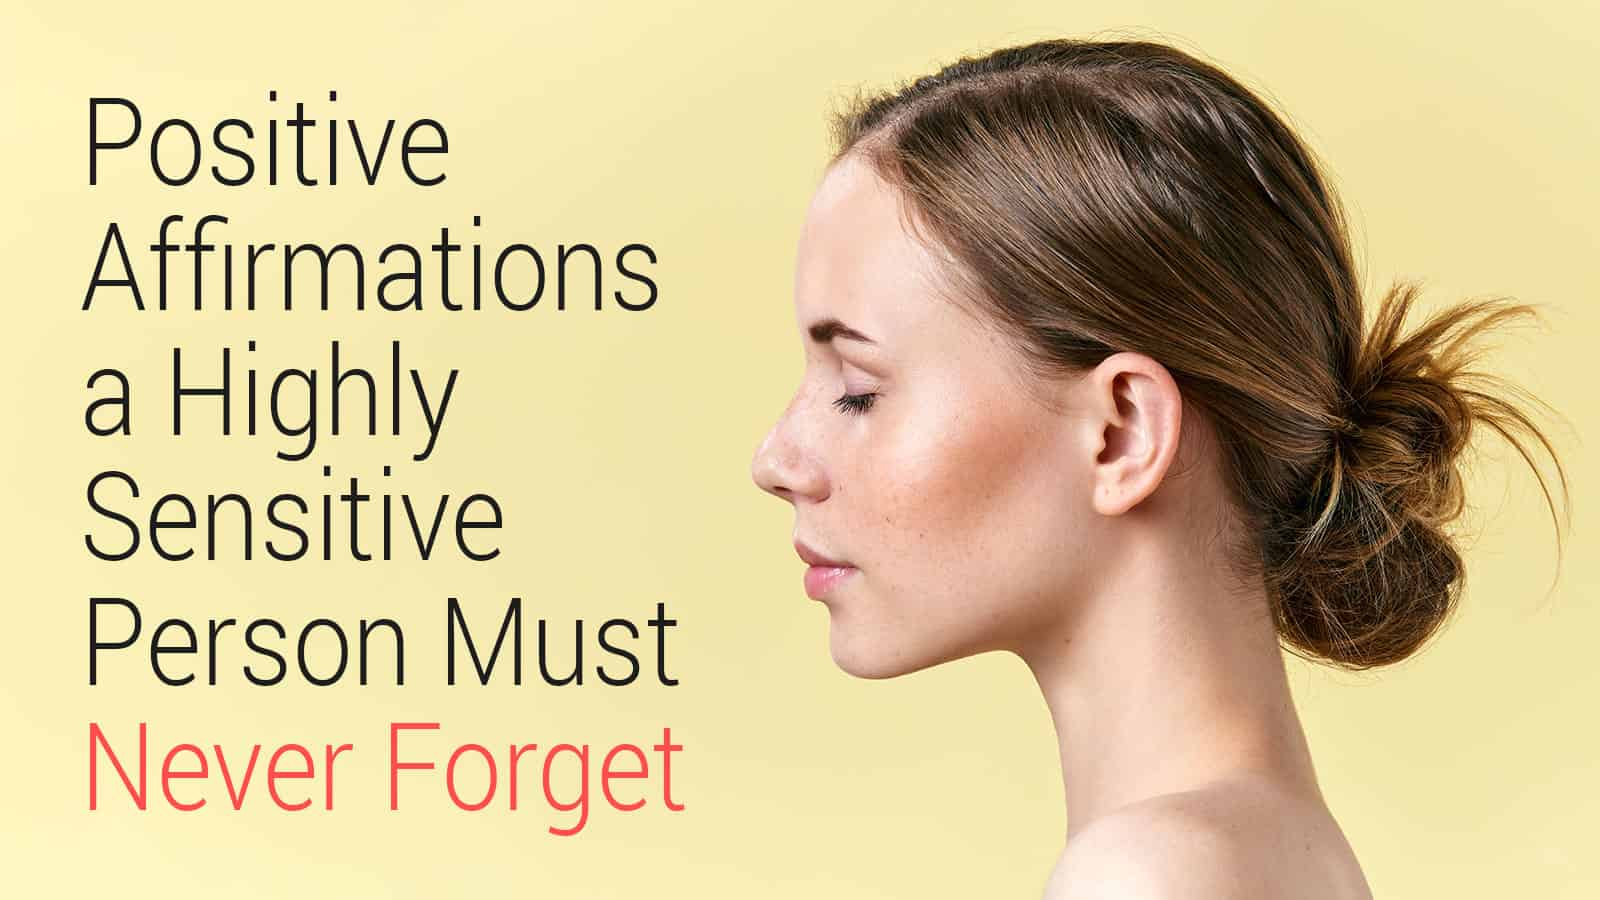 Positive-Affirmations-a-Highly-Sensitive-Person-Must-Never-Forget2.jpg